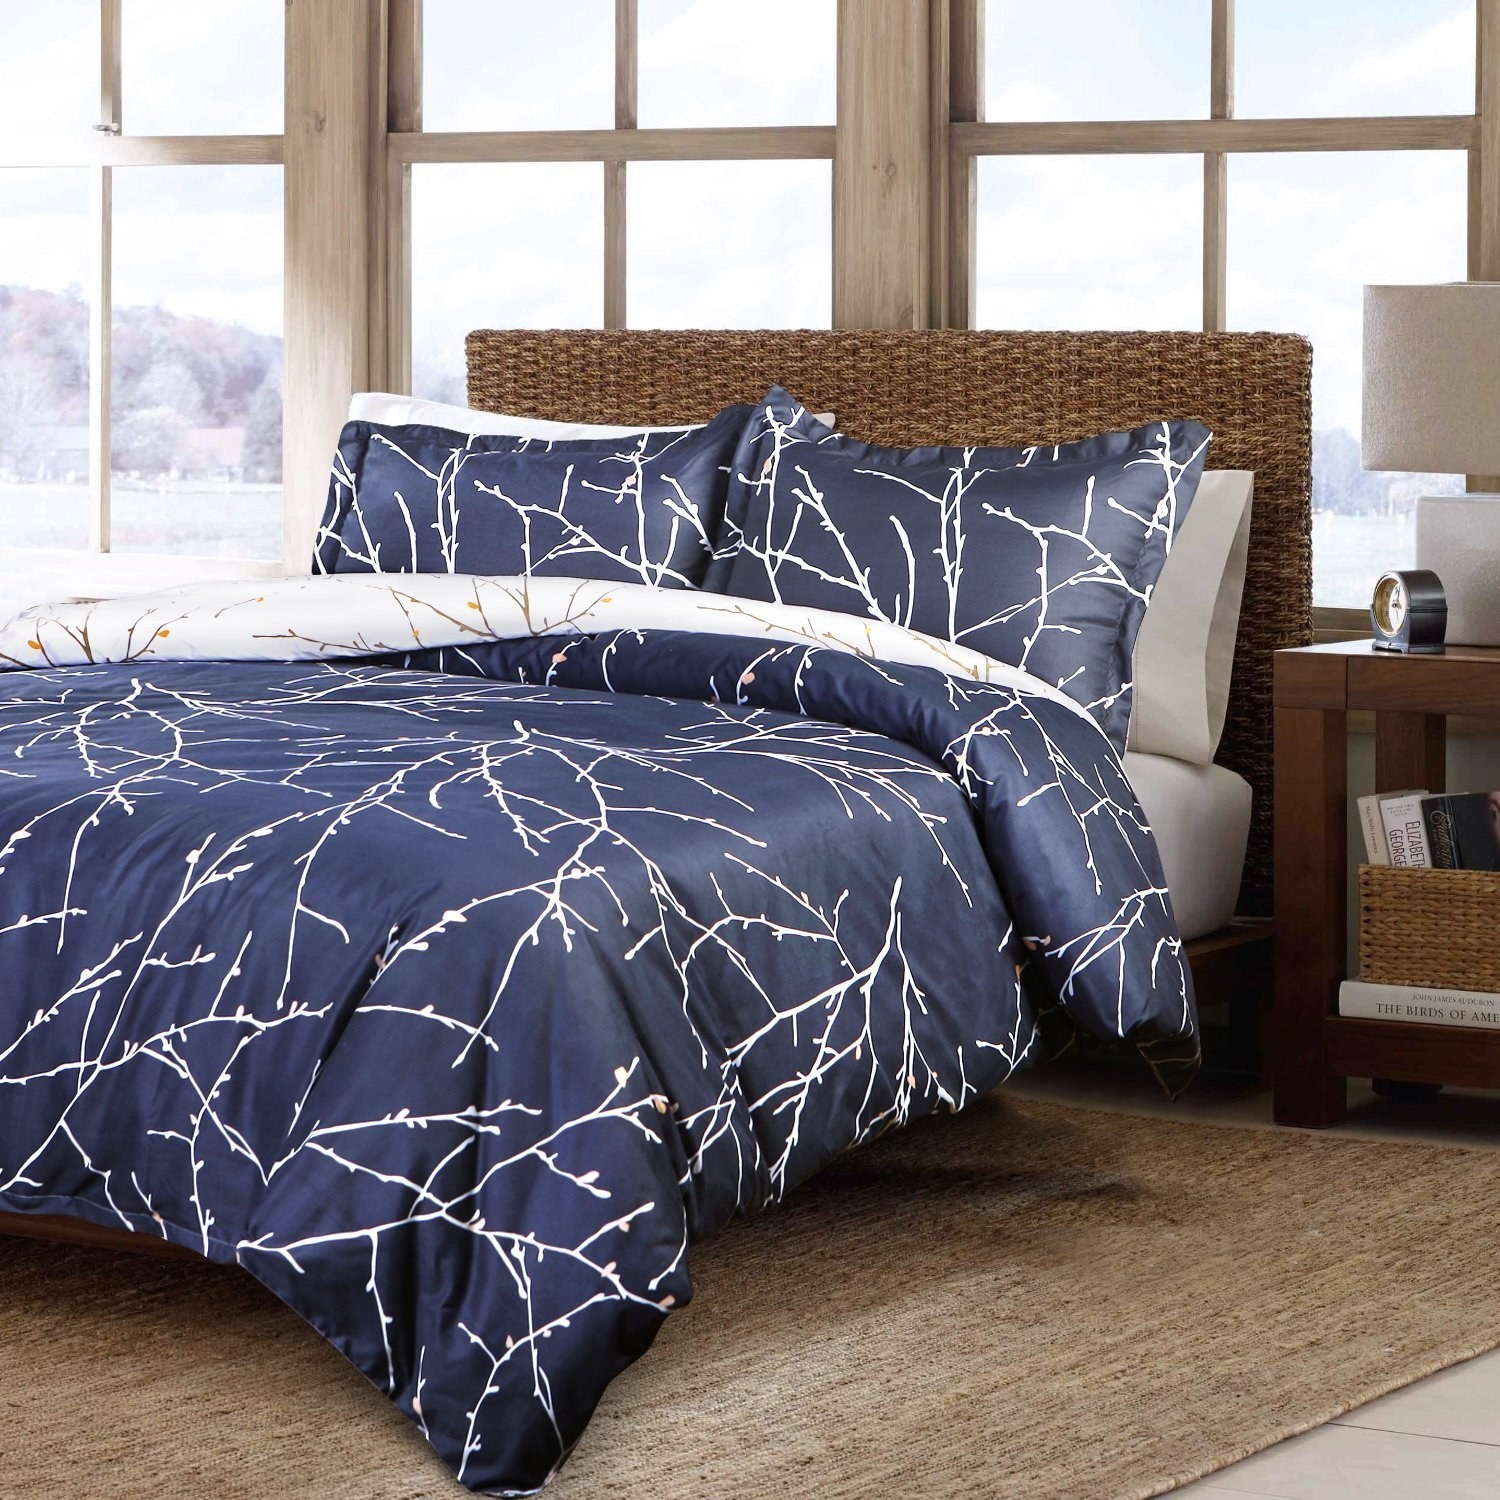 Promising Review: U0026quot;Just Slept Under This Wonderful, Super Soft And  Light Duvet